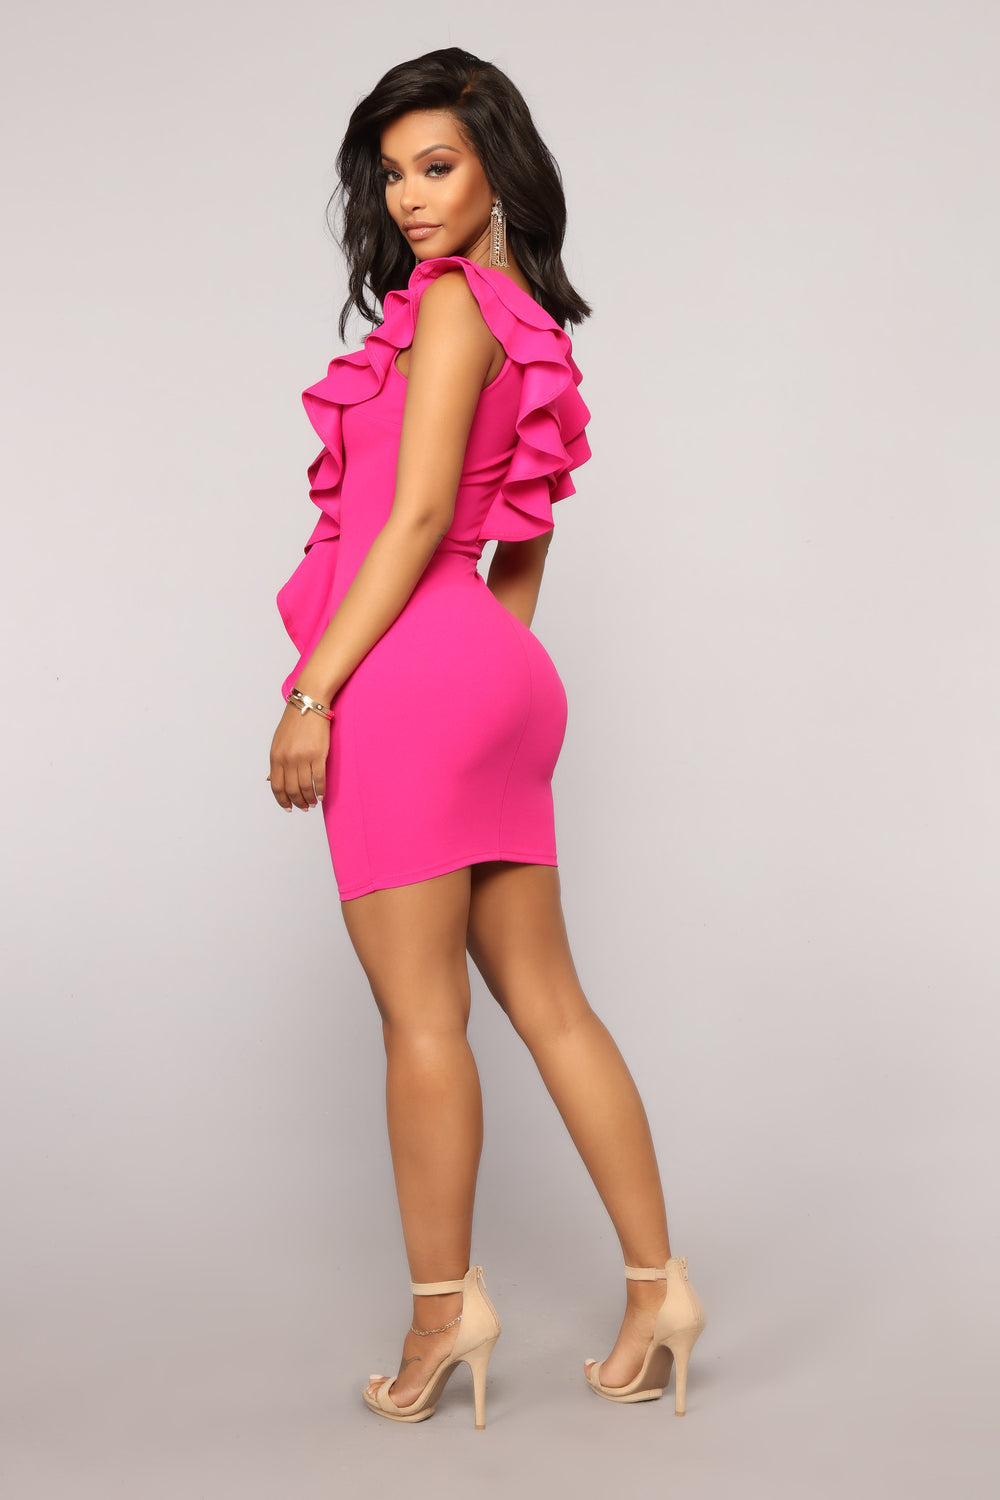 Only Desire Ruffle Dress - Fuchsia